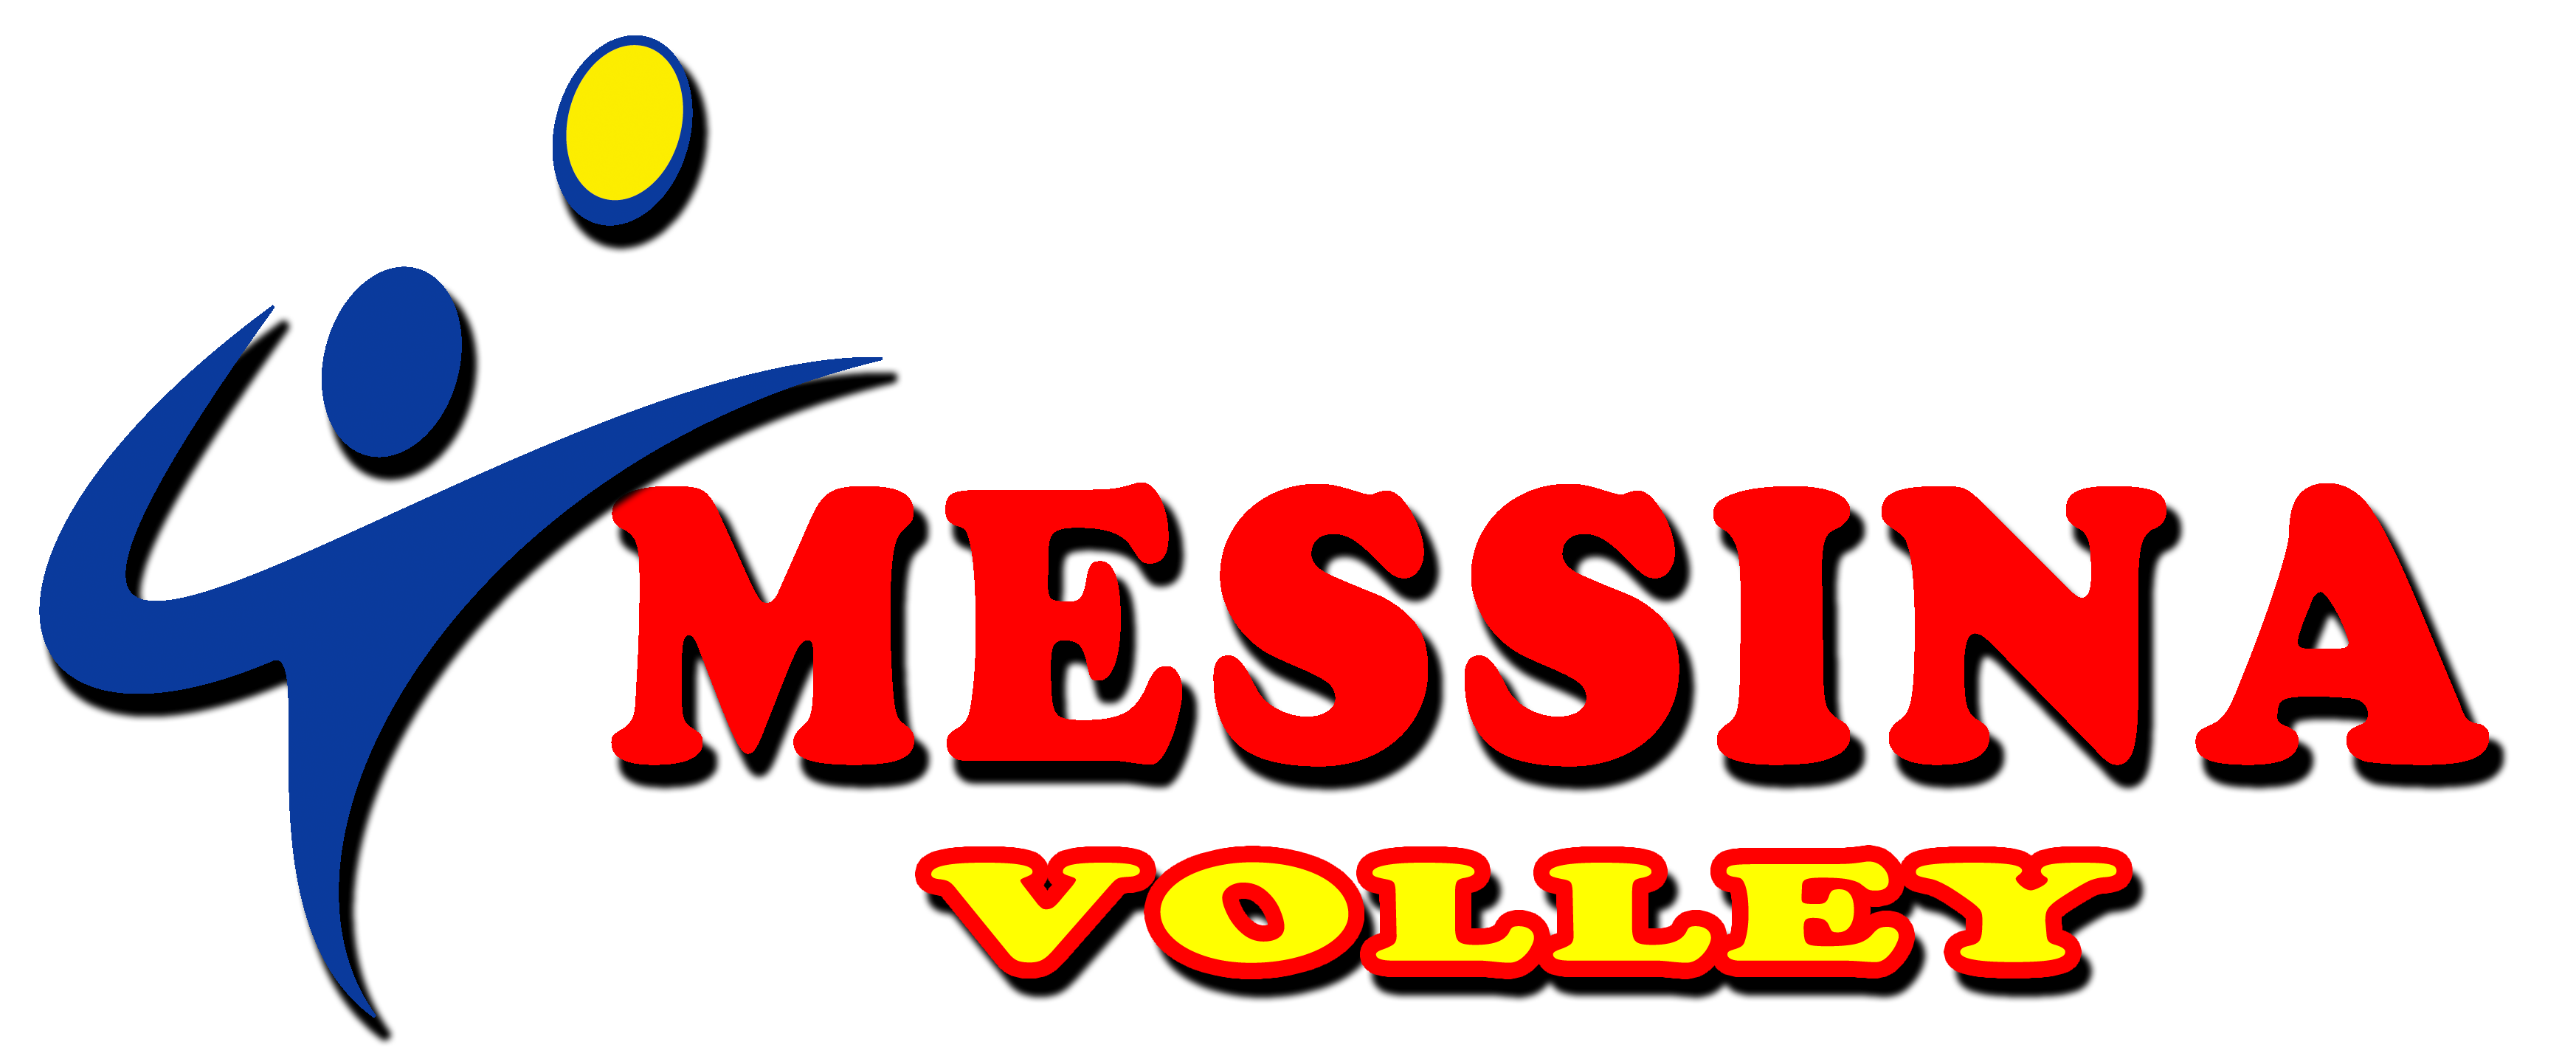 logo-ufficiale-messina-vollpng